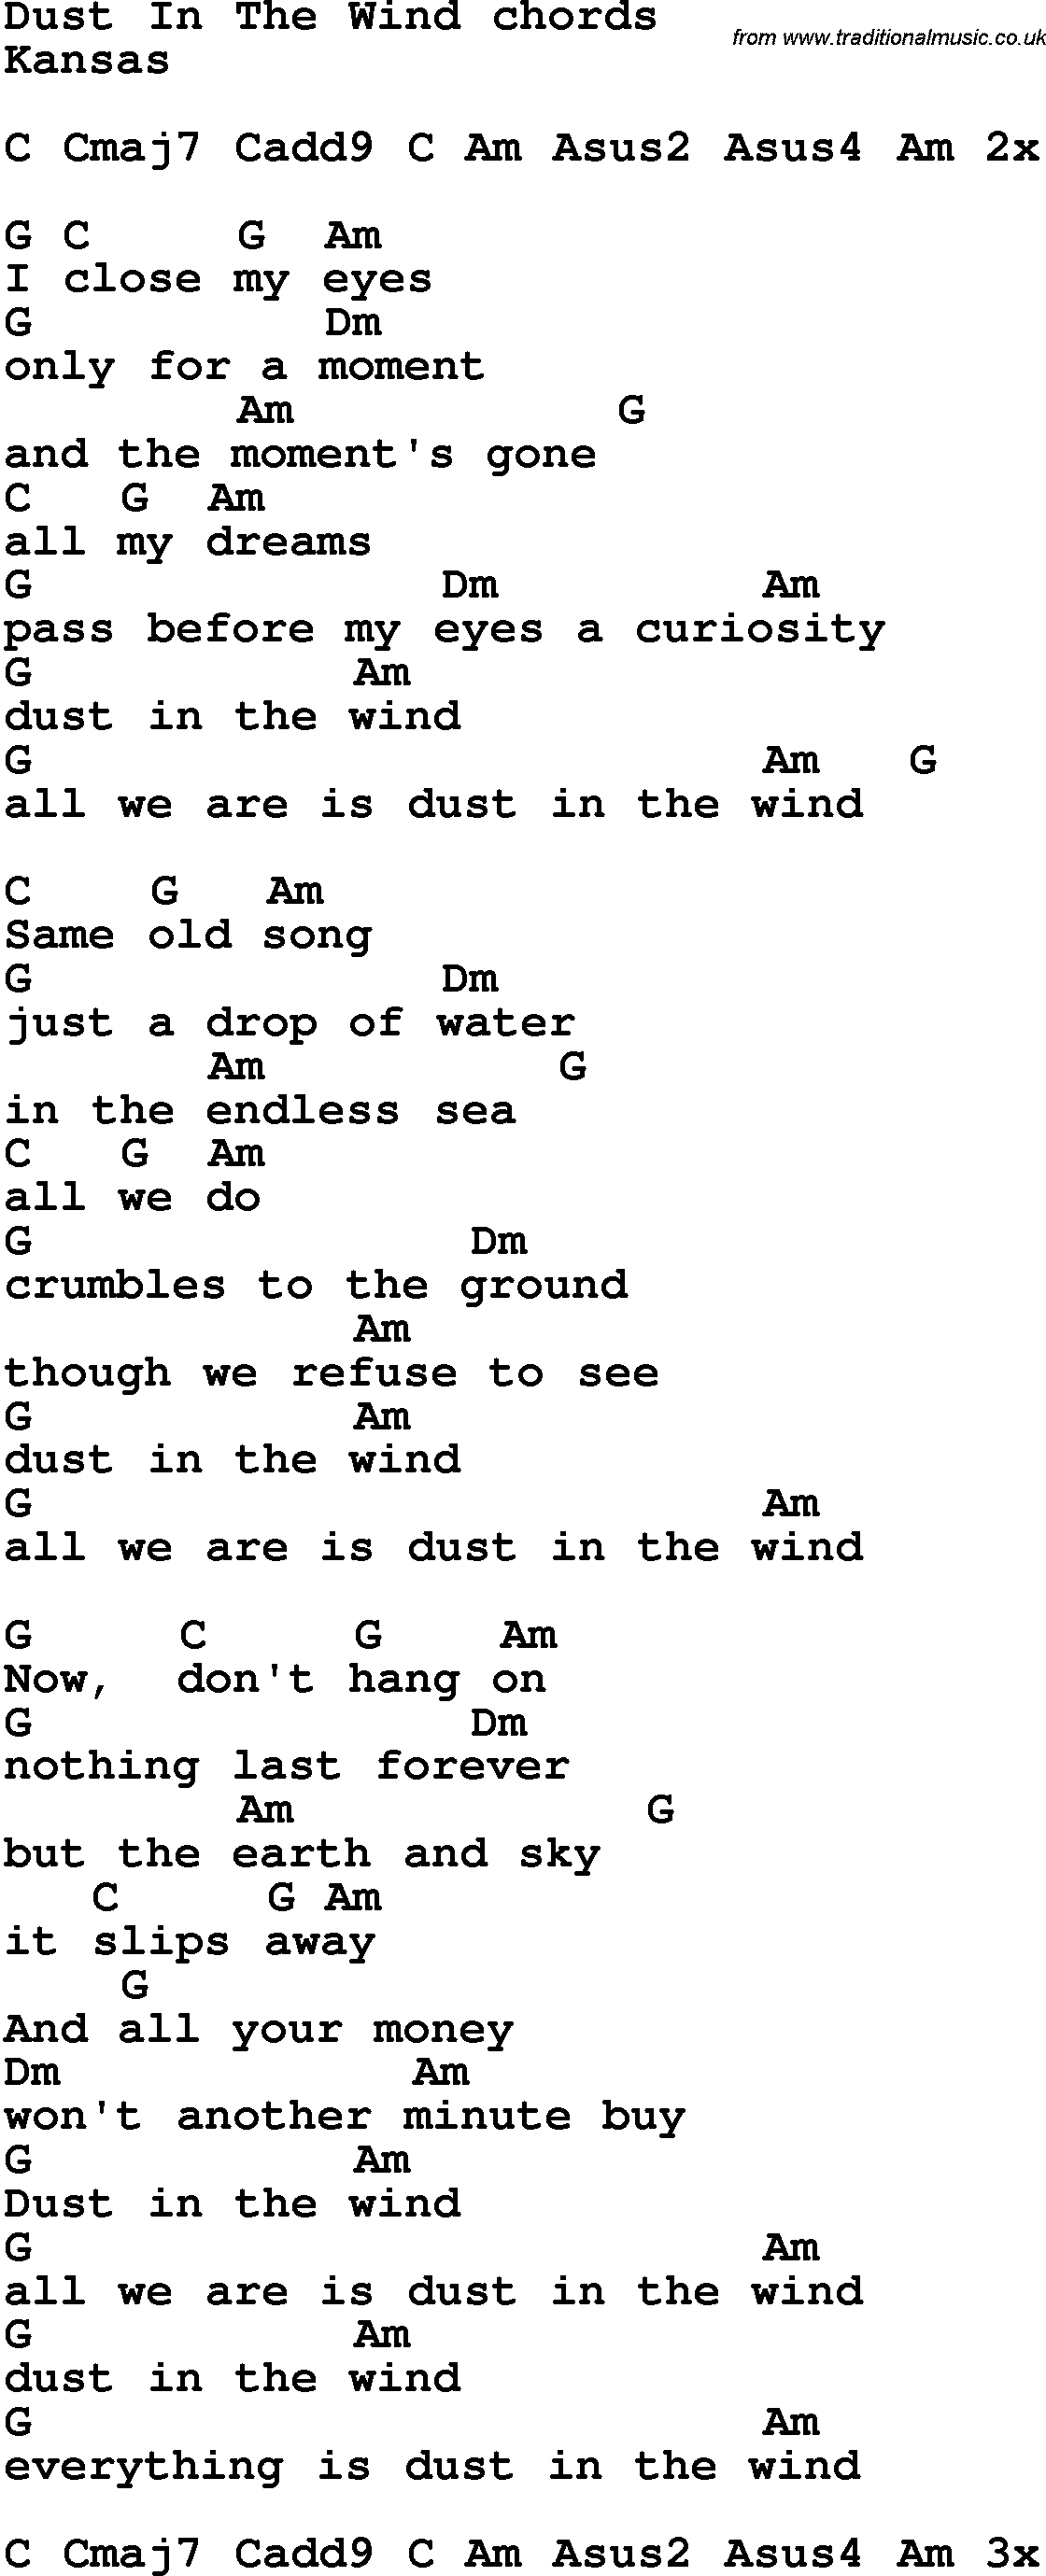 Song Lyrics With Guitar Chords For Dust In The Wind | Music In 2019 - Free Printable Song Lyrics With Guitar Chords